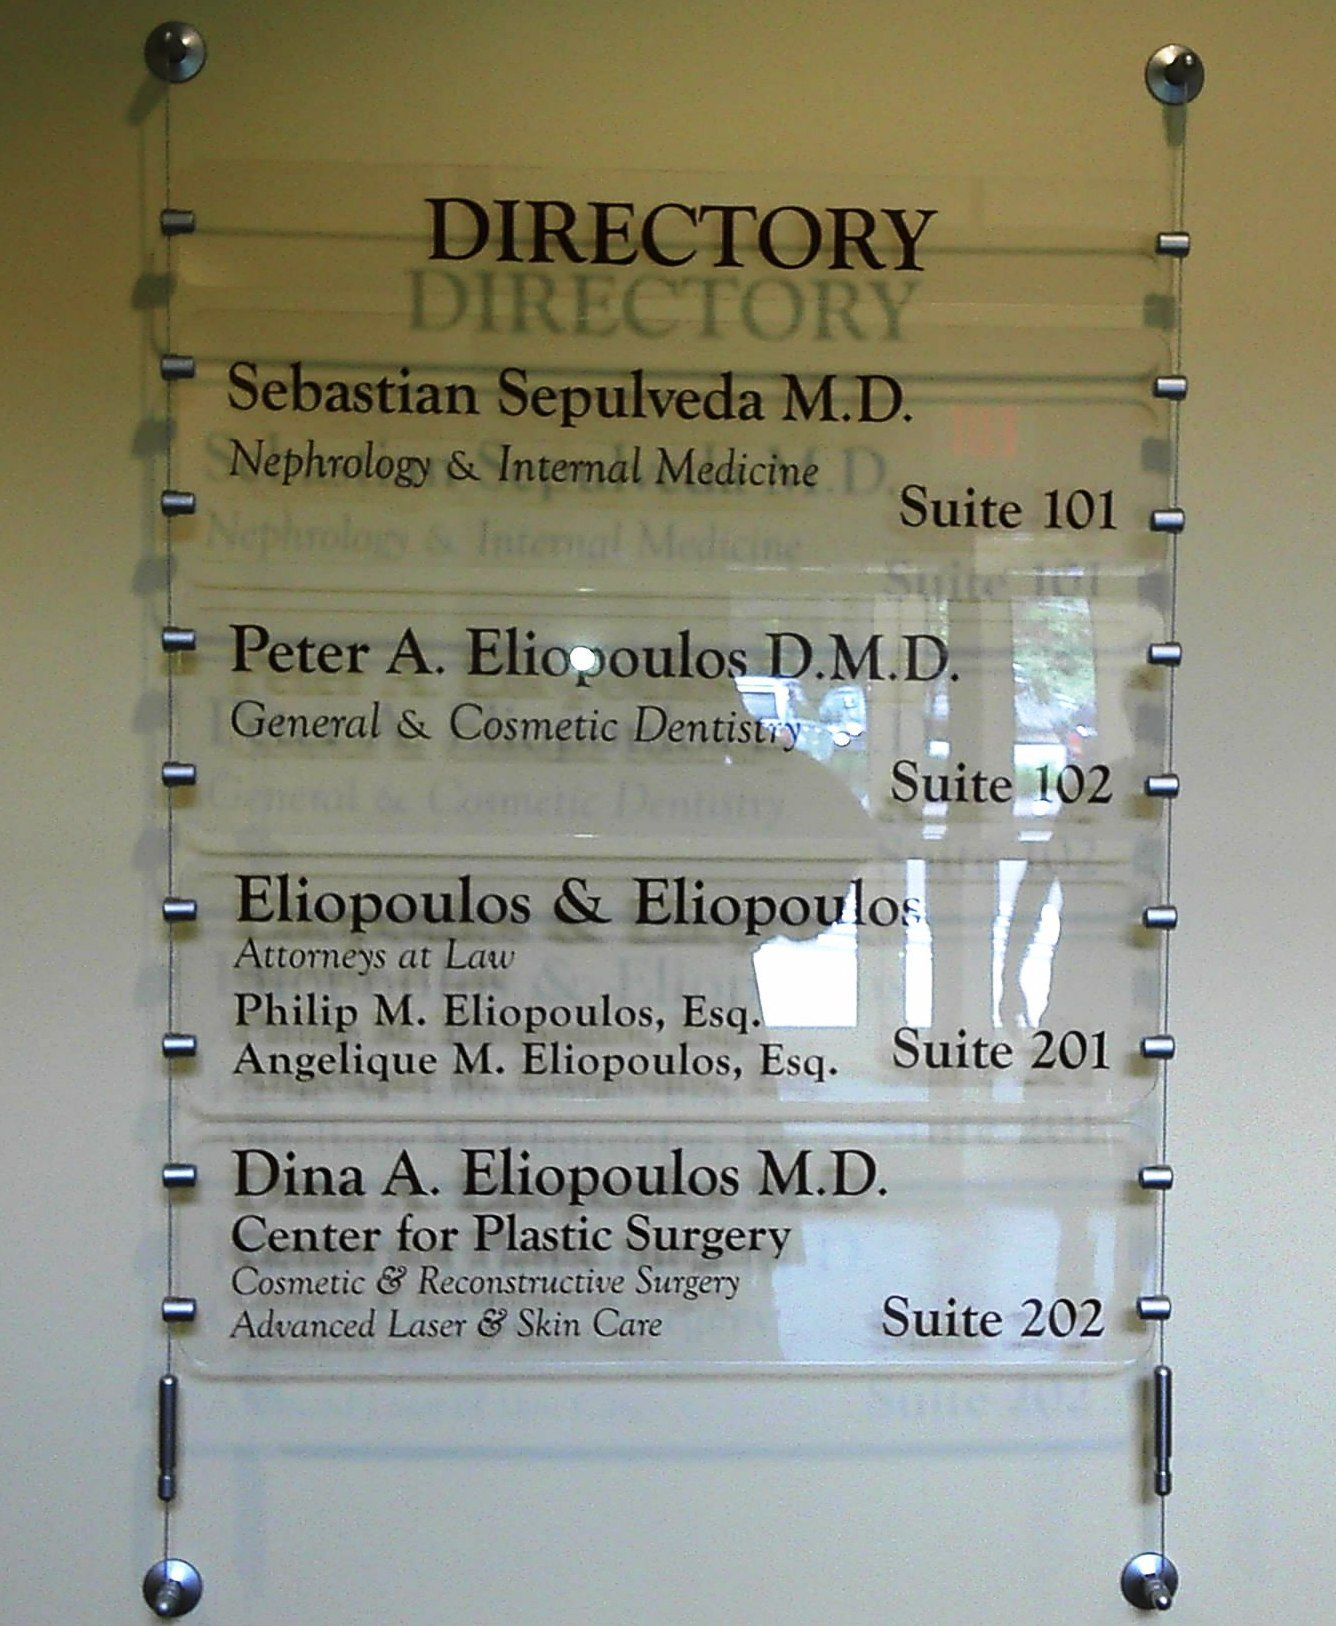 building directories signage - Google Search | Building ...